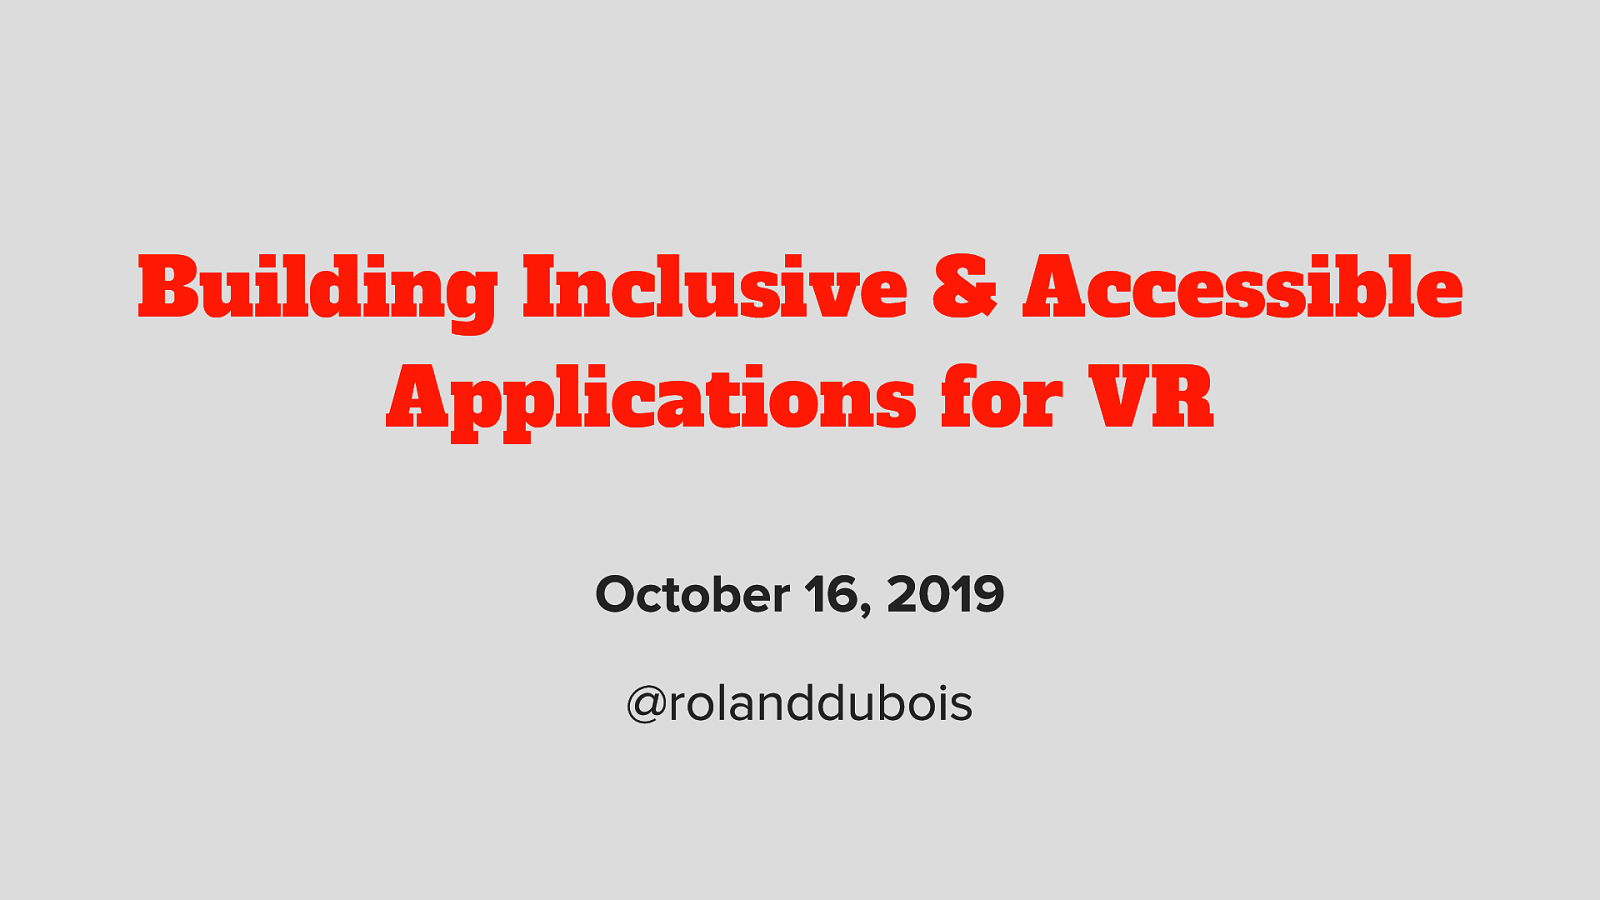 Building Inclusive & Accessible Applications for VR @ VRED